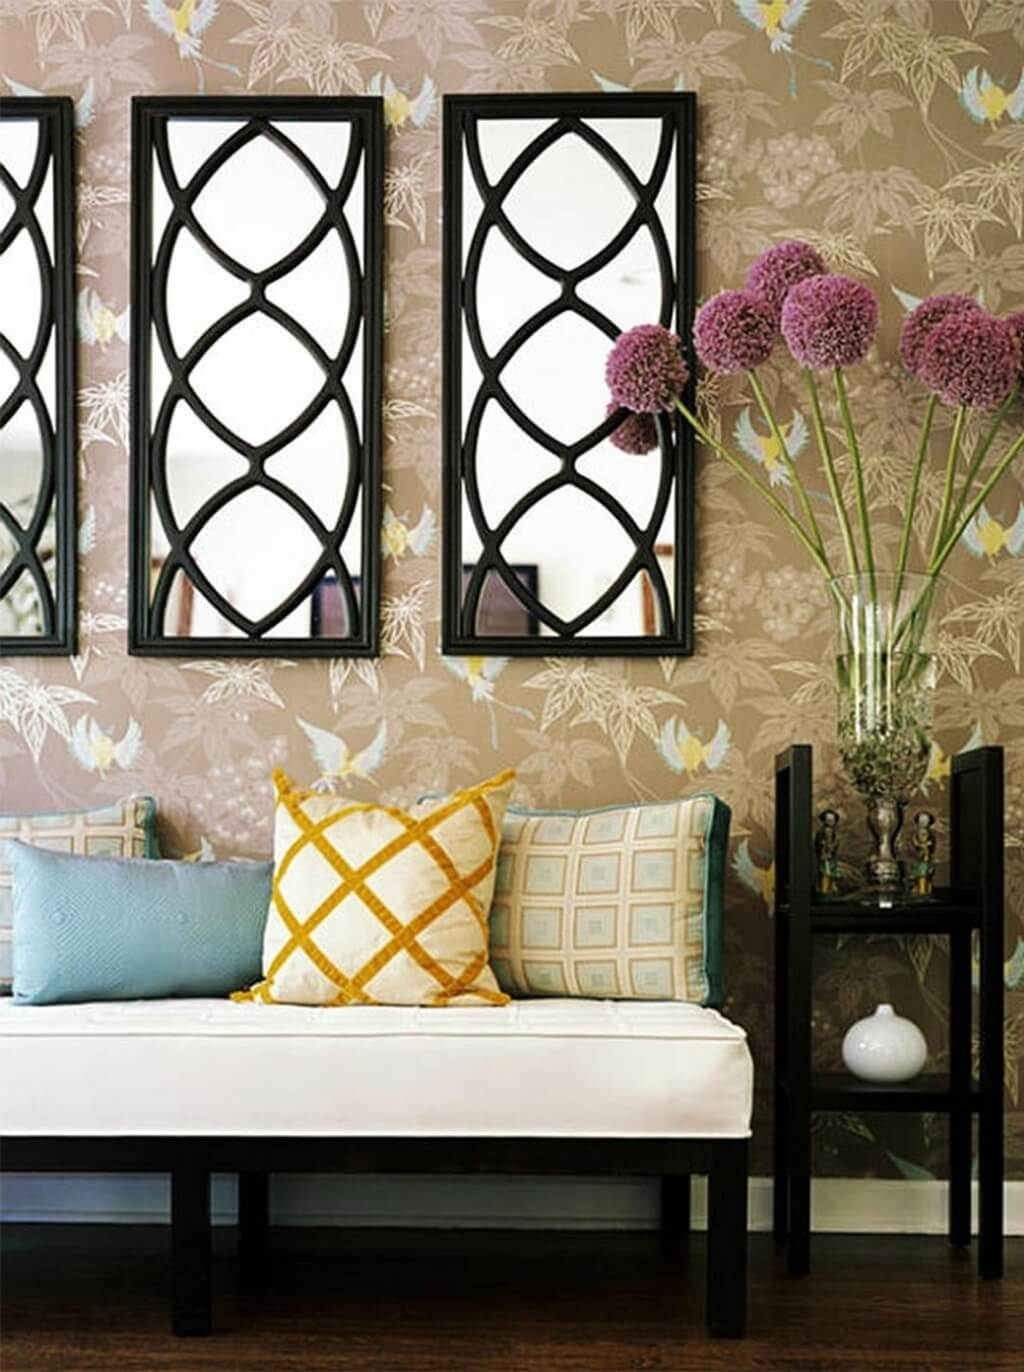 Contemporary Design Wall Mirrors Decorative Luxury 23 Fancy Inside Fancy Wall Mirrors (Image 2 of 15)